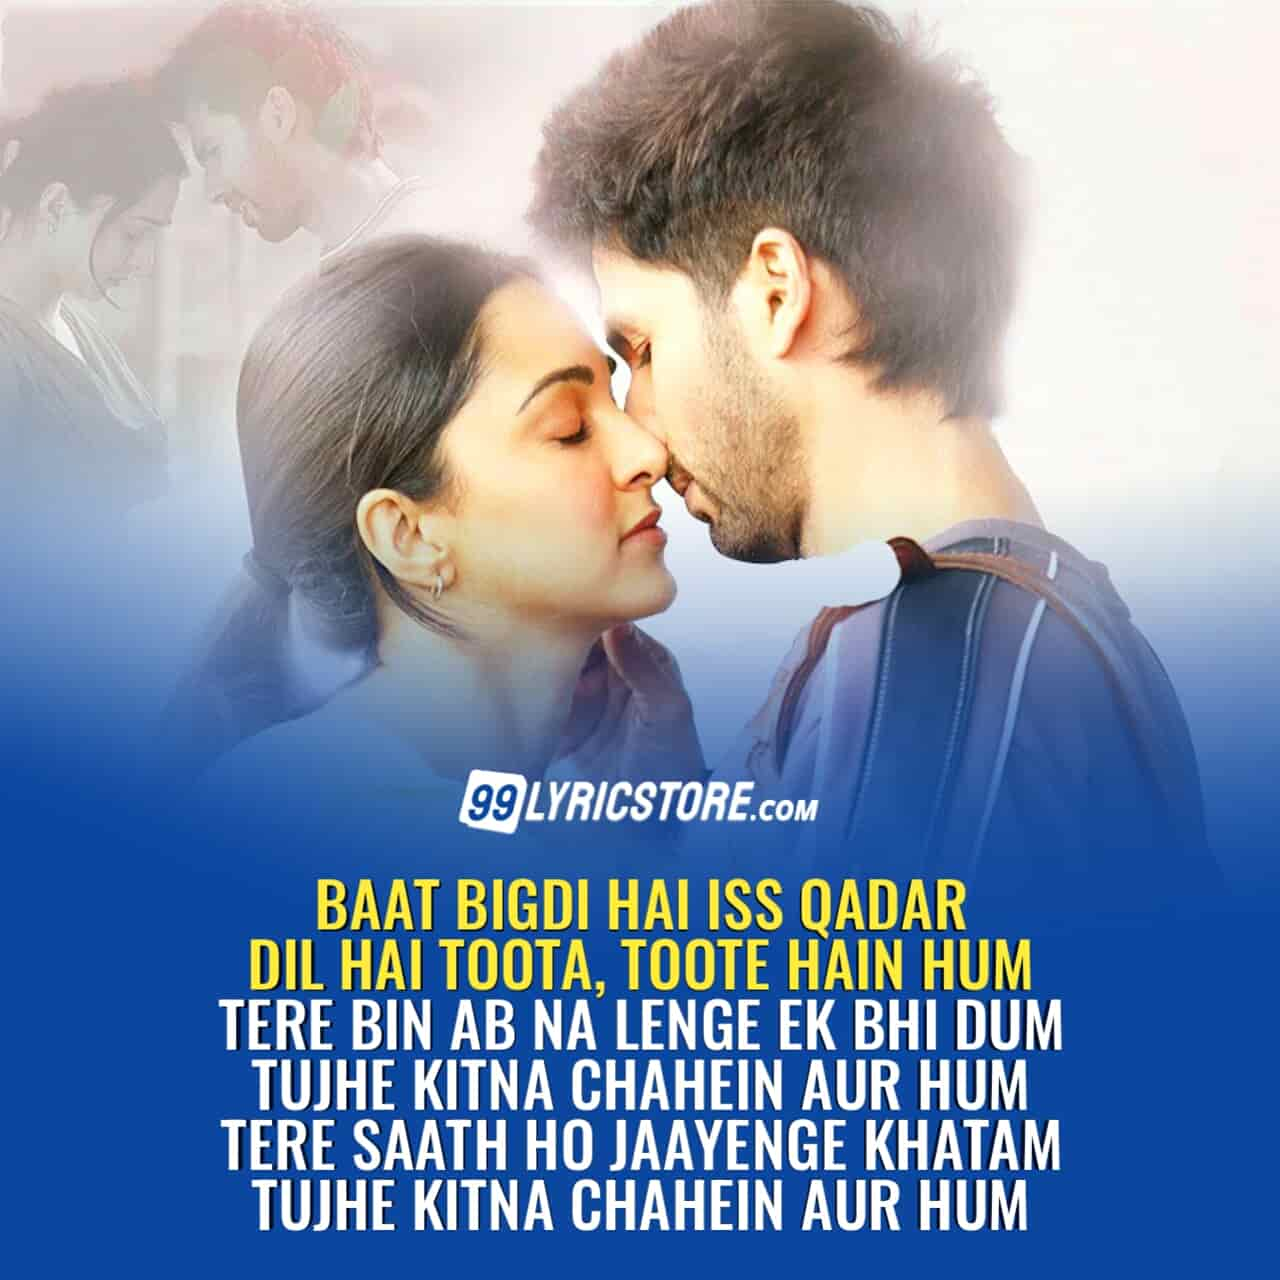 Tujhe Kitna Chahein Aur Hindi Love Song Lyrics Sung by Jubin Nautiyal from movie Kabir Singh